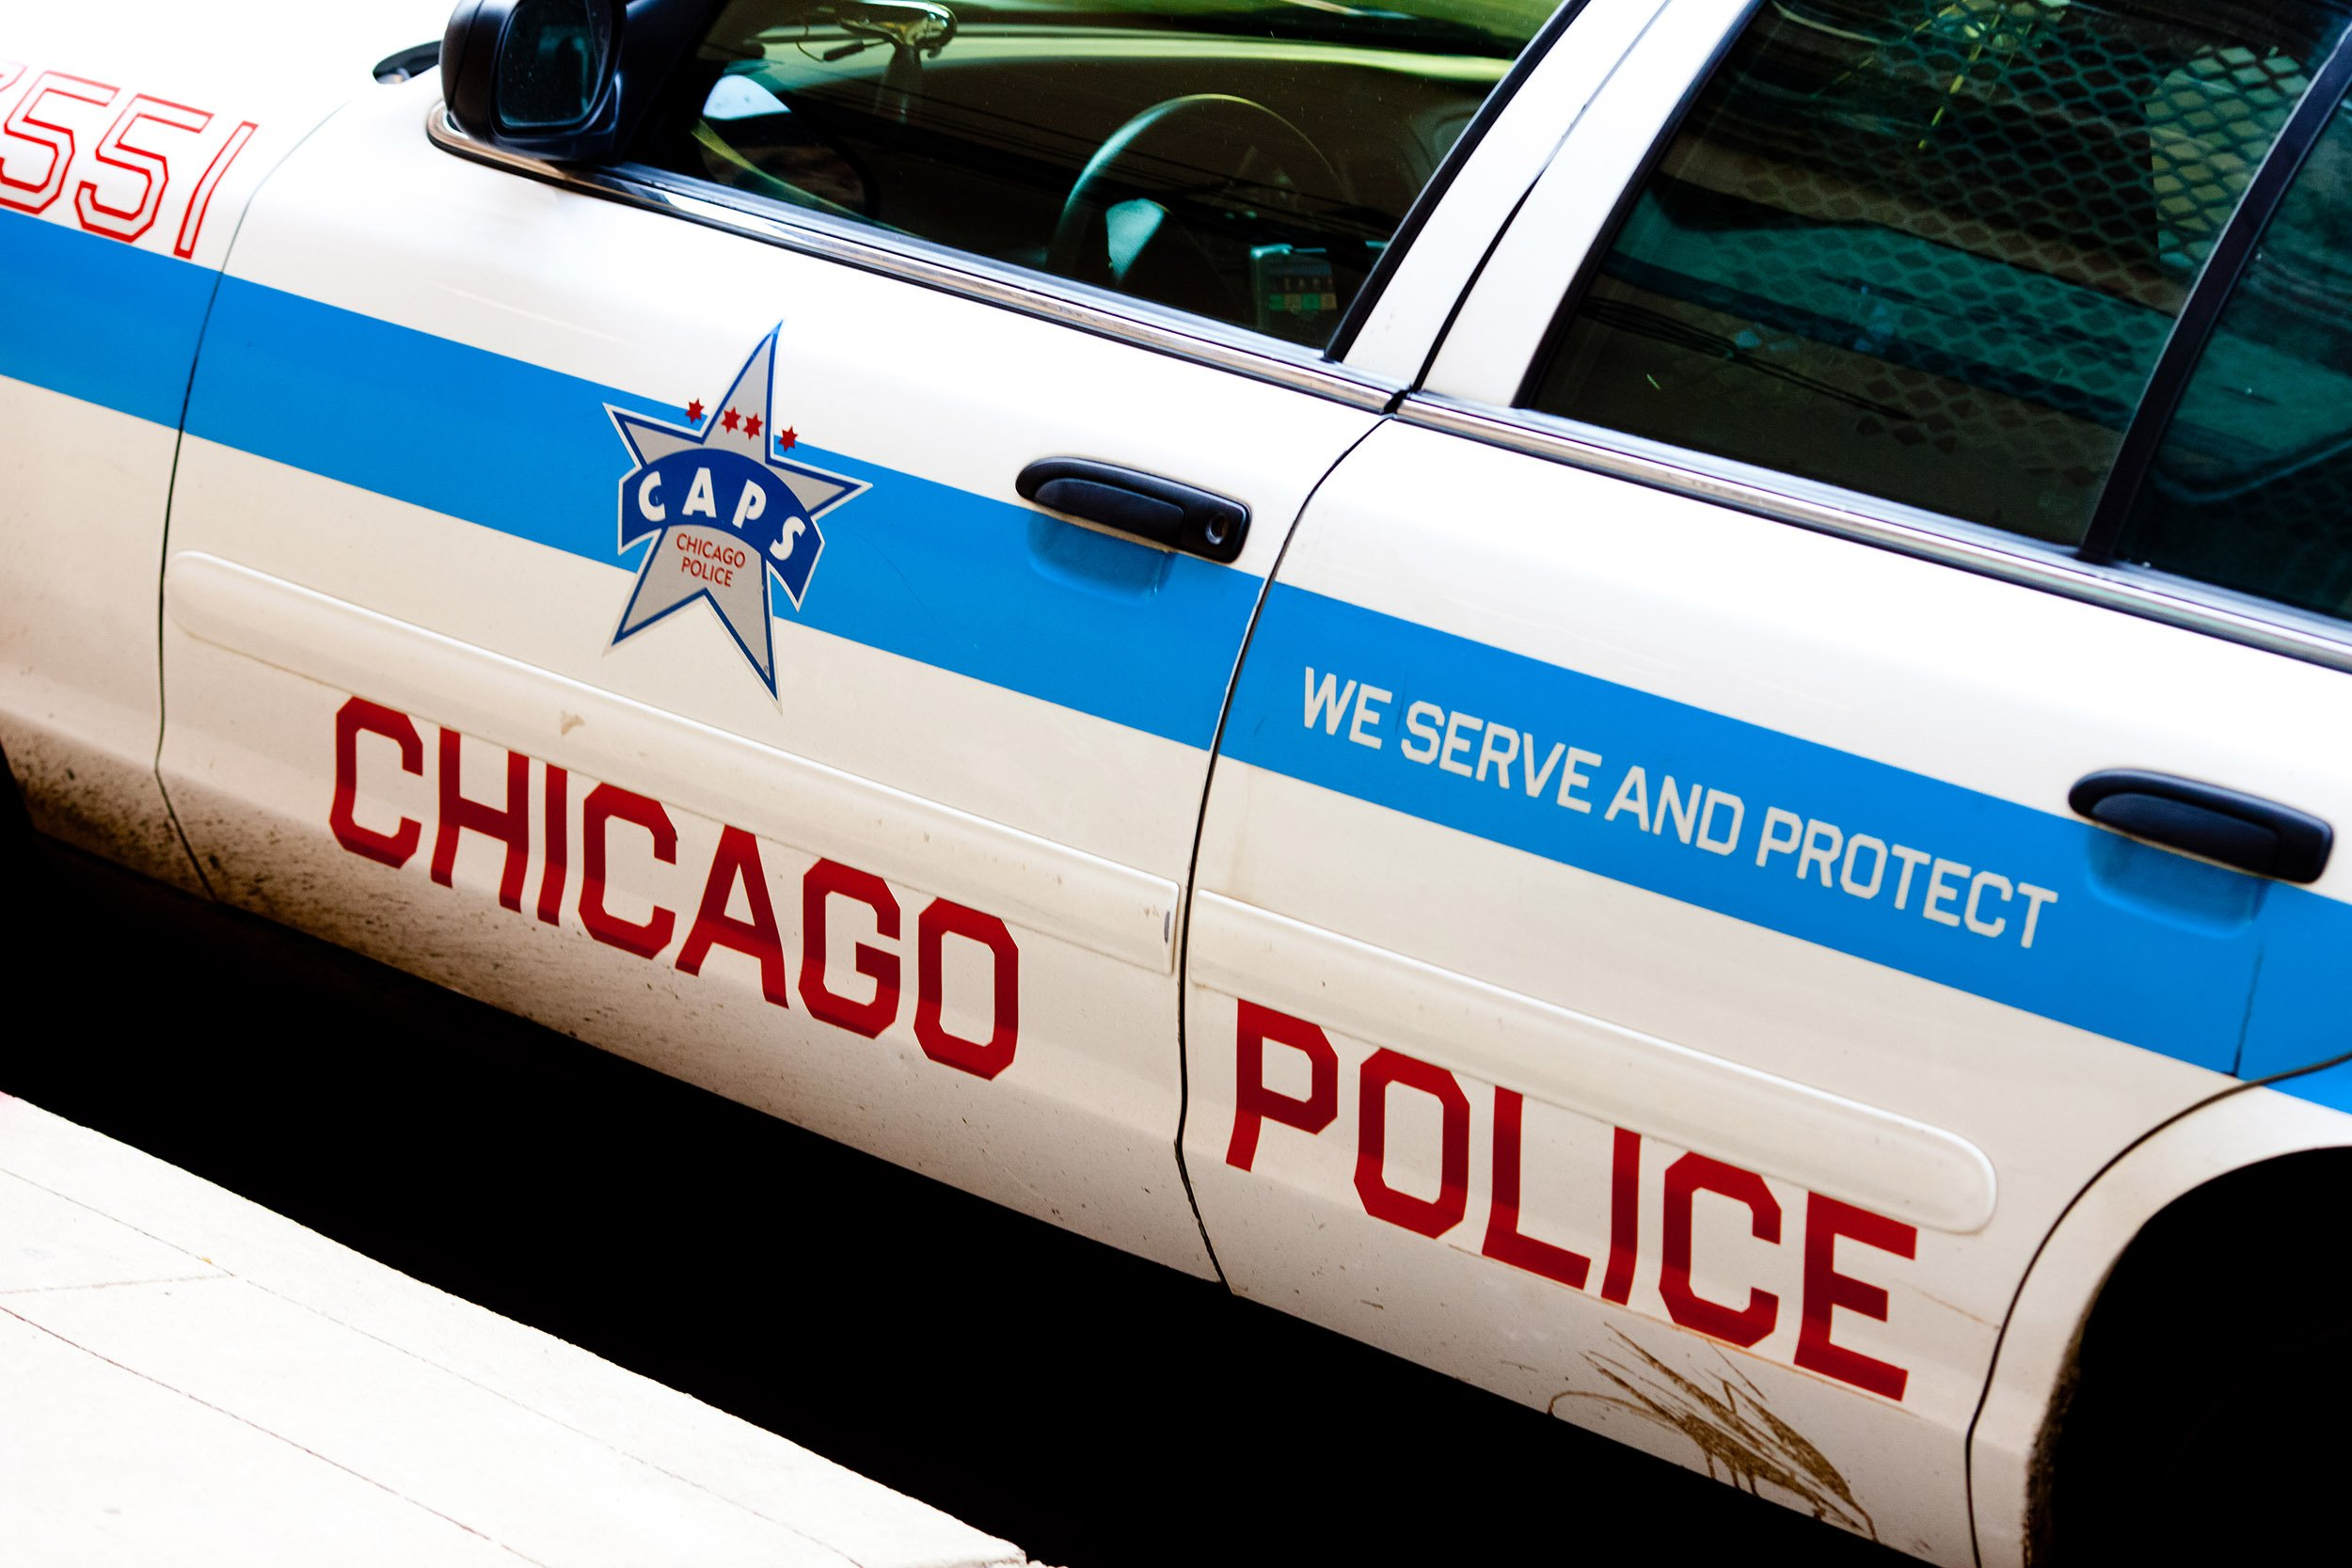 11_06_ChicagoPolice_01